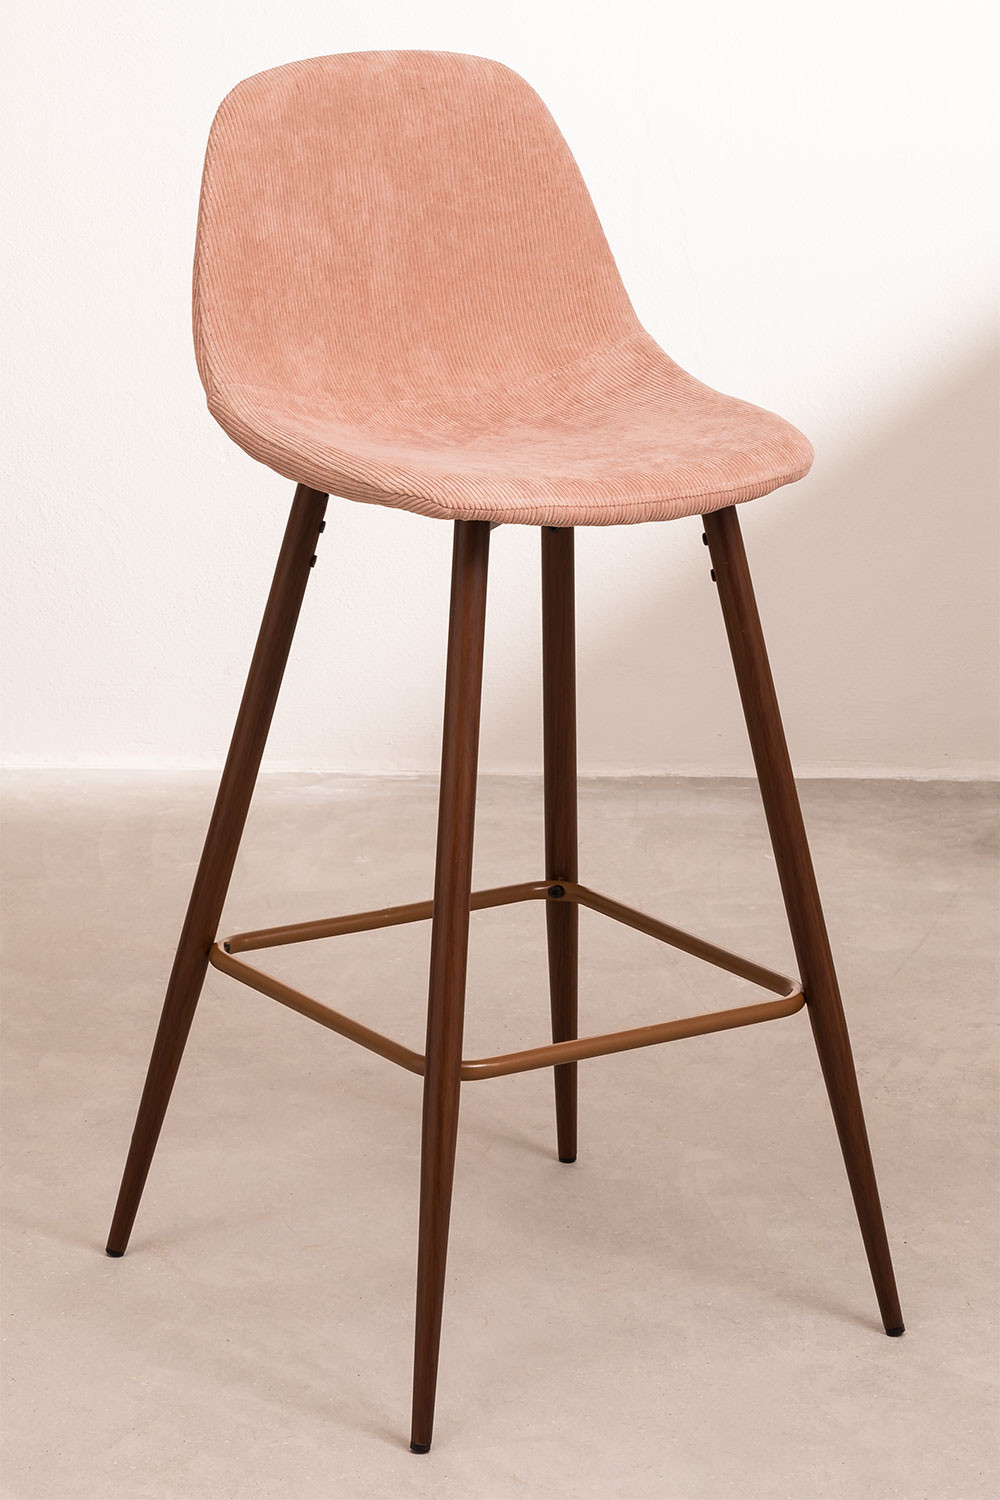 Pack 4 Tall Stools in Corduroy Glamm, gallery image 1